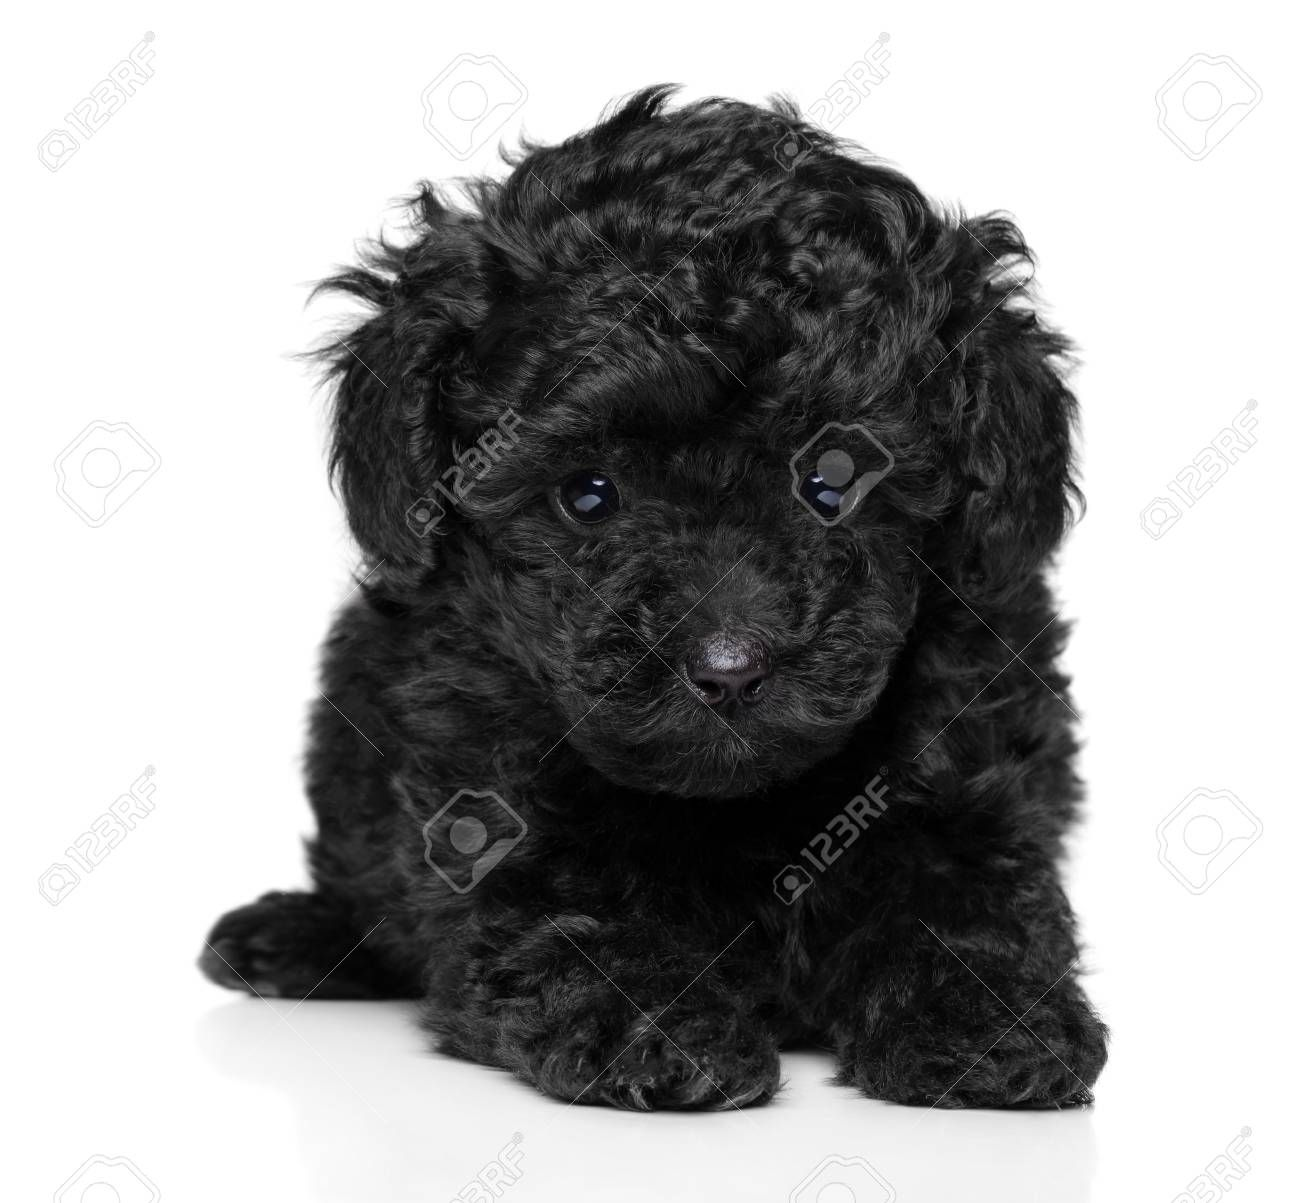 Close Up Of Black Toy Poodle Puppy On White Background Stock Photo